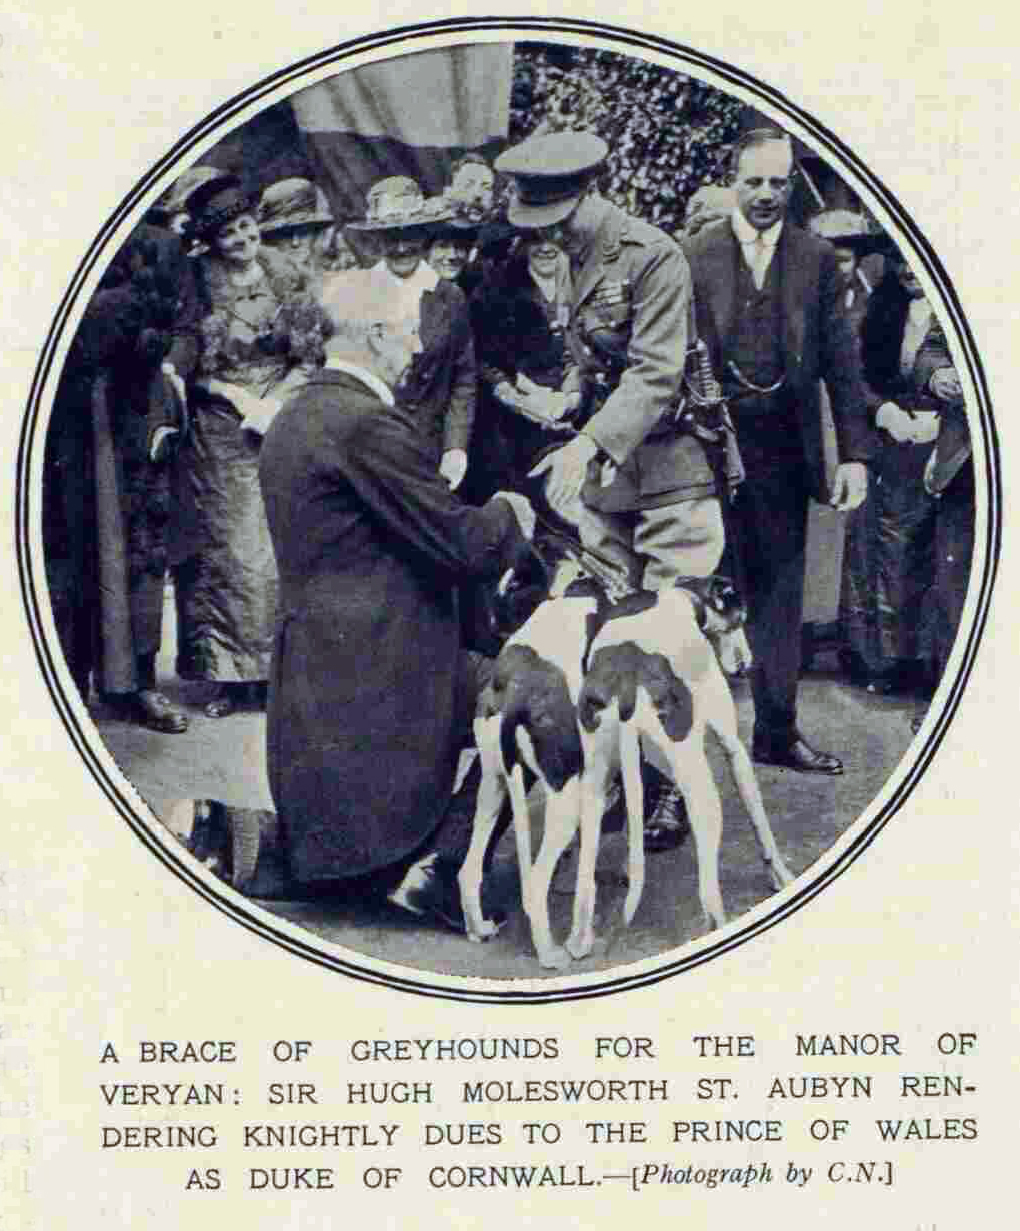 1921 visit of Prince Edward being presented with two greyhounds